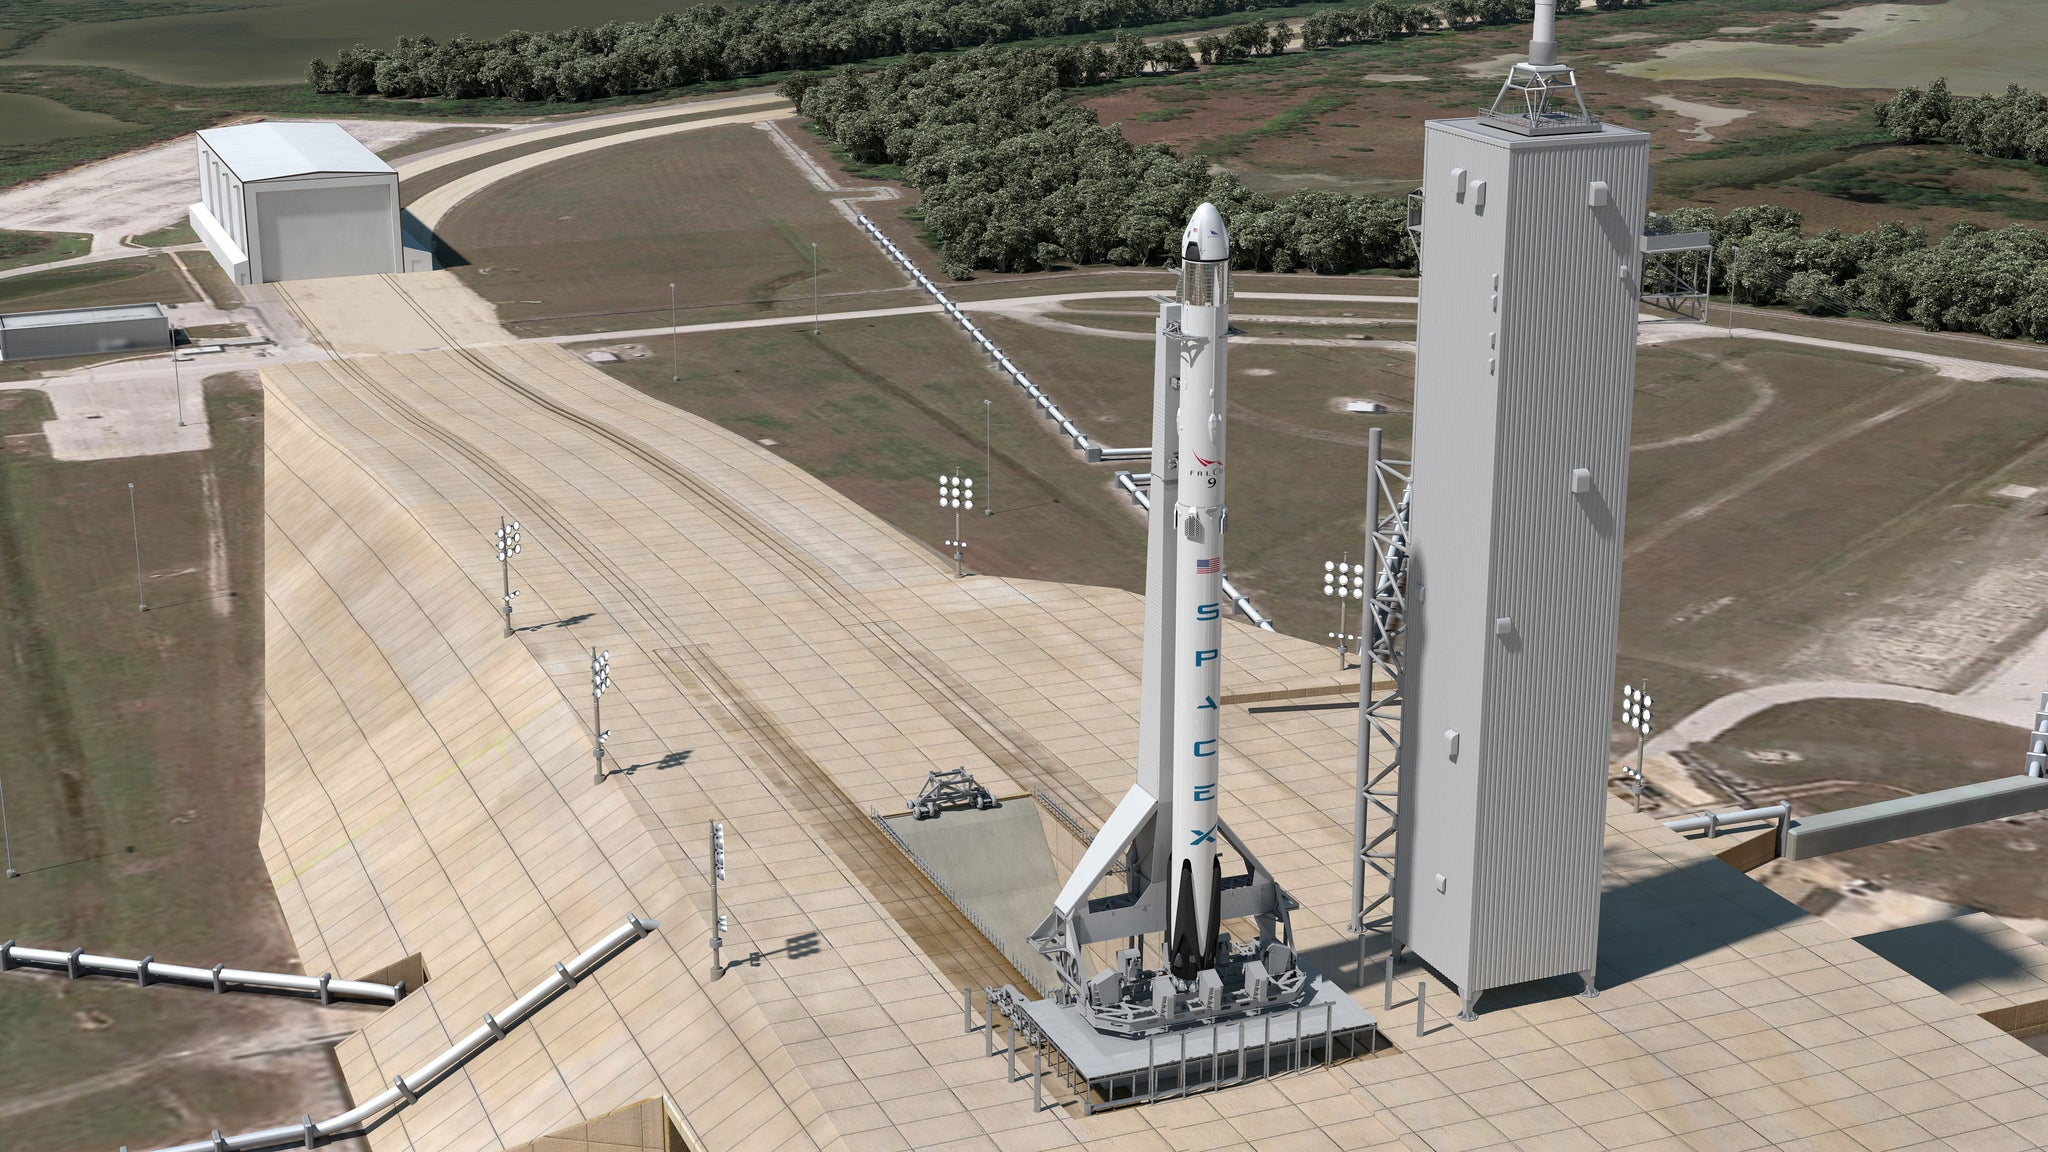 SpaceX Wants to Land a Rocket at Cape Canaveral